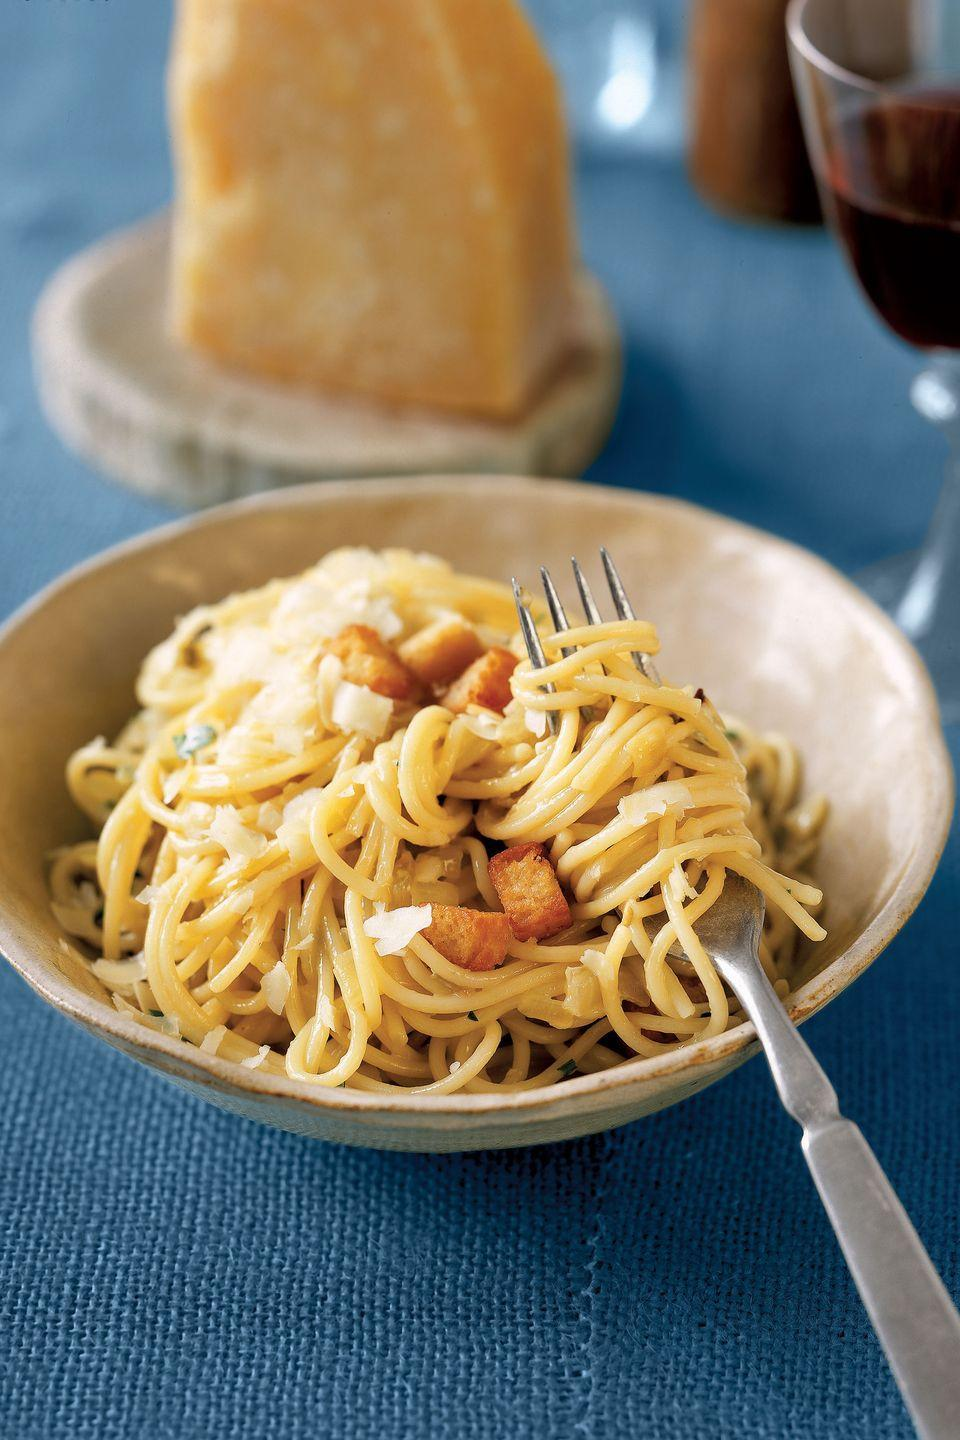 "<p>Quick and easy pasta begins with basic ingredients, such as mushrooms, onions, and red peppers. An egg yolk is tossed with the ingredients and heated through before serving to glaze the pasta in rich, creamy flavor. Finish with a sprinkle of a fragrant, nutty cheese.</p><p><strong><a href=""https://www.countryliving.com/food-drinks/recipes/a791/easy-pantry-pasta/"" rel=""nofollow noopener"" target=""_blank"" data-ylk=""slk:Get the recipe."" class=""link rapid-noclick-resp"">Get the recipe.</a></strong></p>"